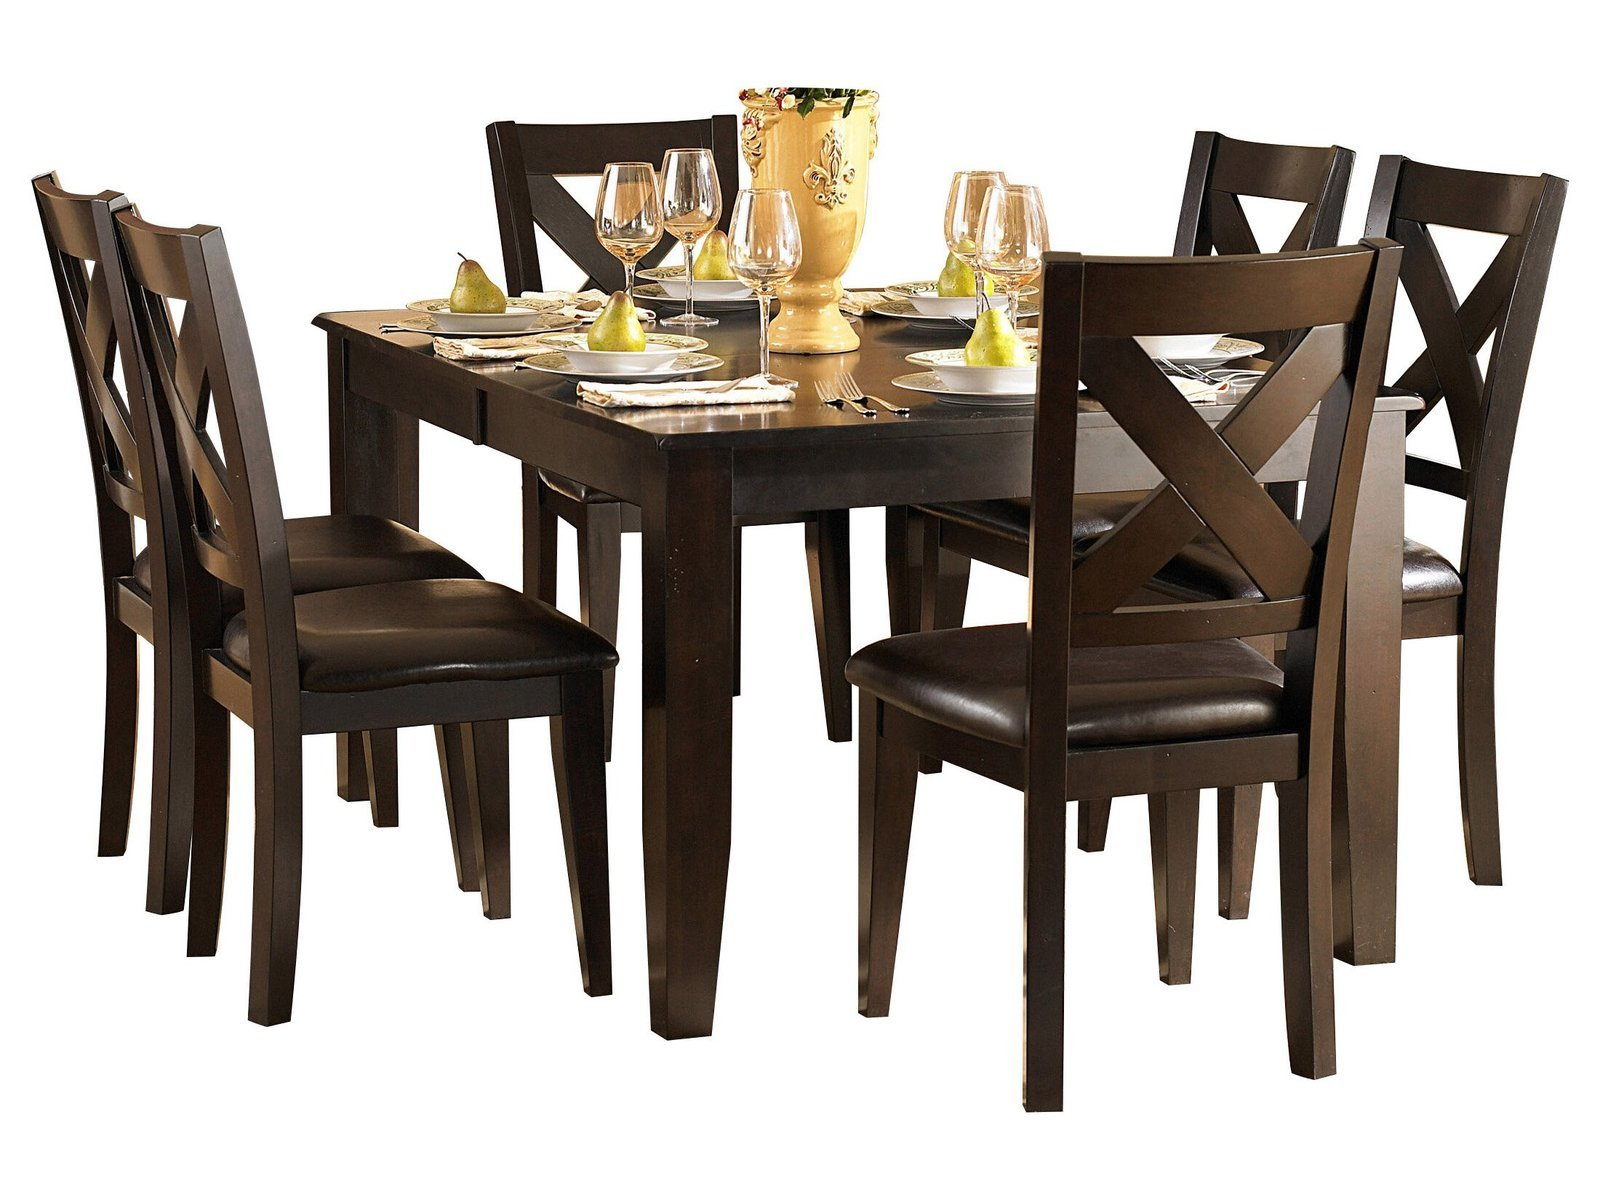 Creekmore Casual Modern 7PC Dining Set Table & 6 Chair In Merlot